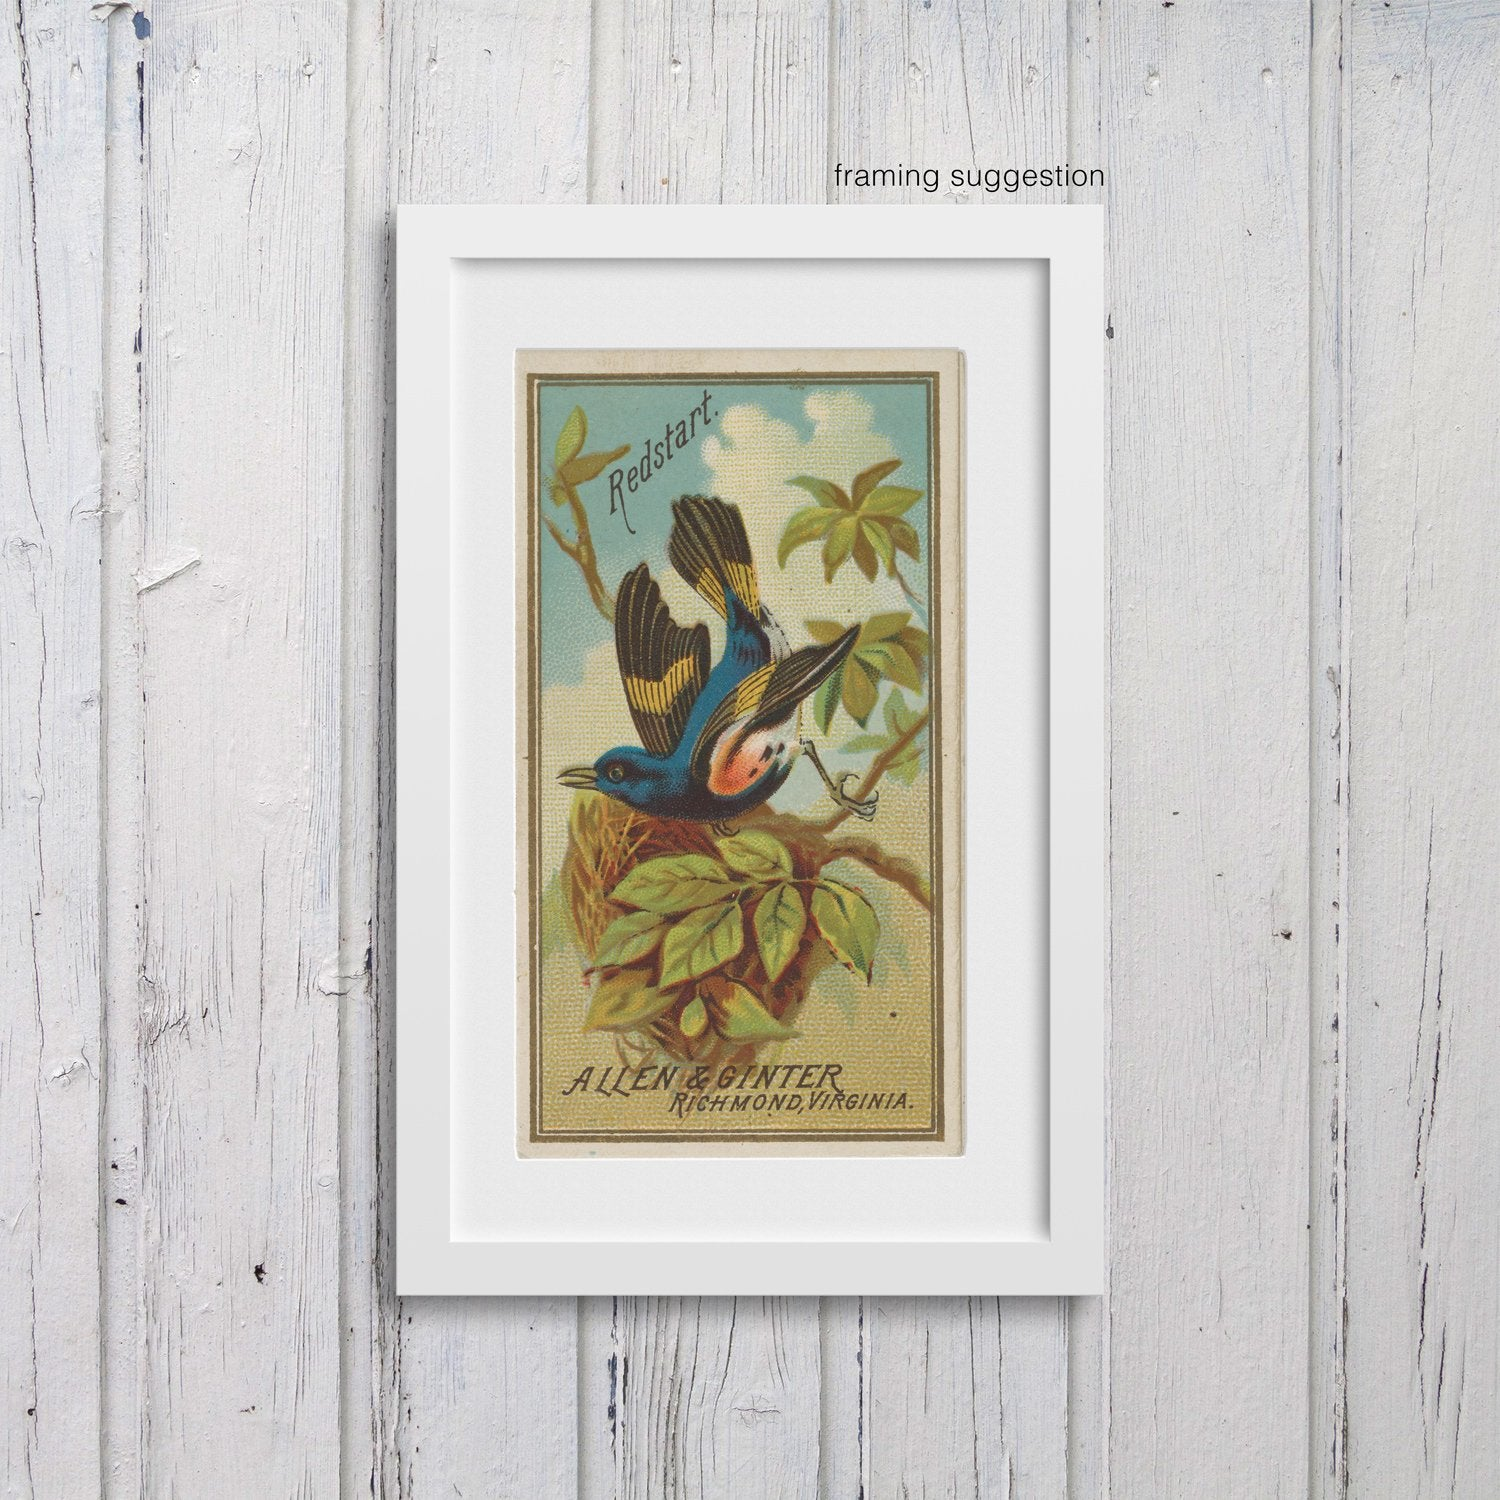 framed giclee print of redstart bird, vintage cigarette card design